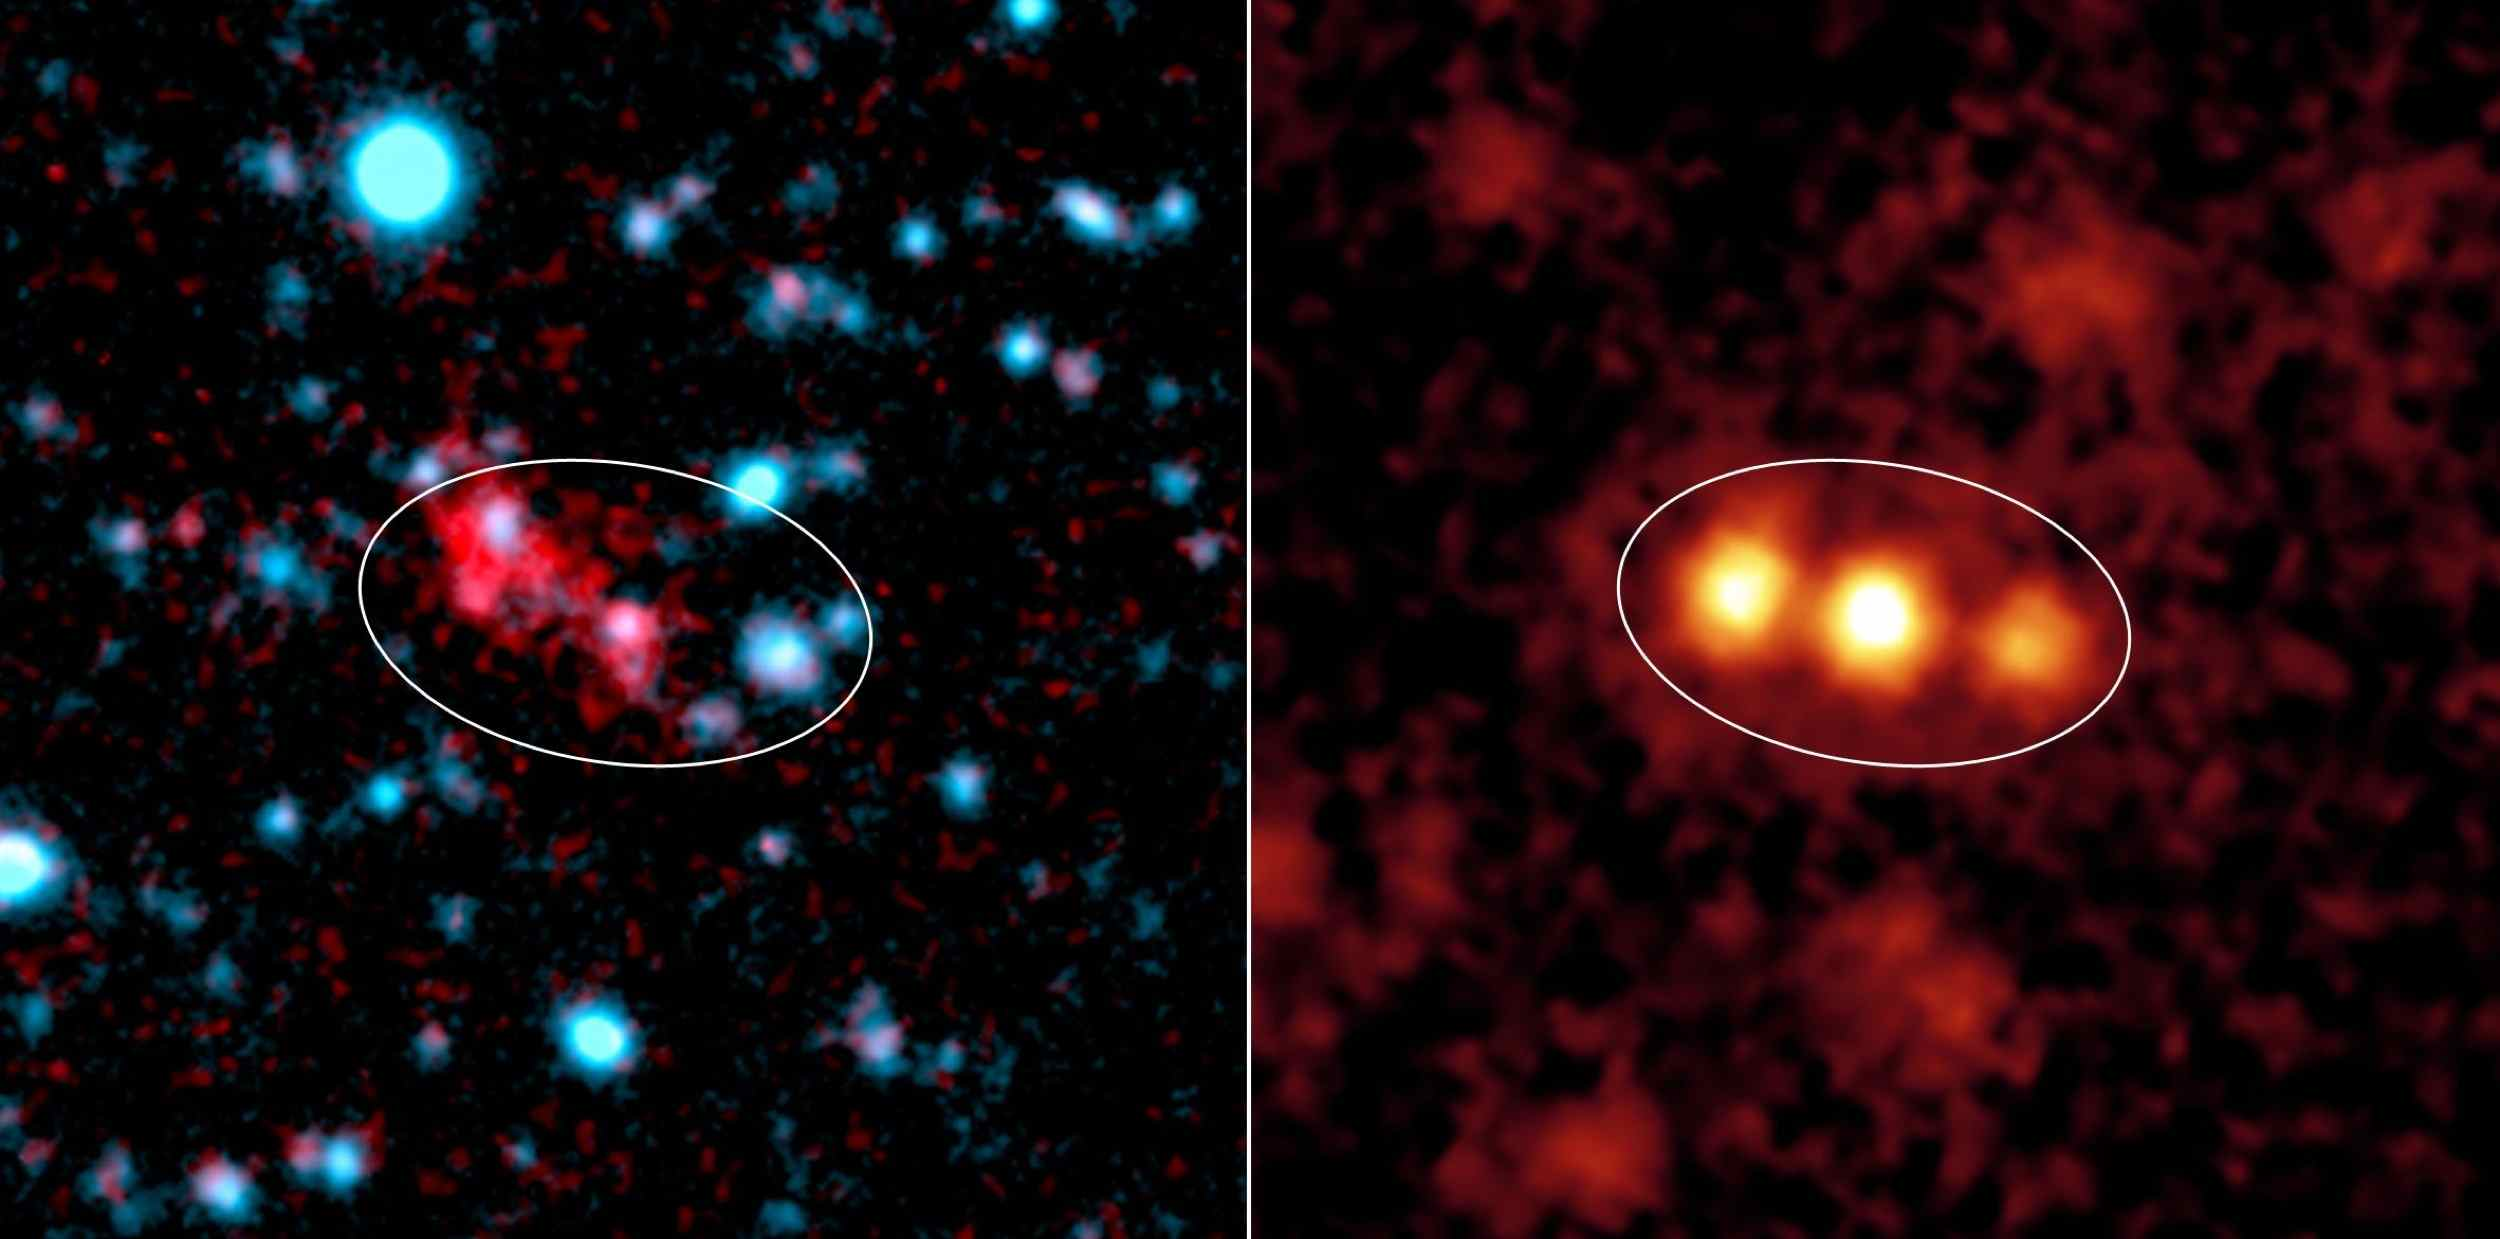 Blobs are intensely glowing clouds of hot hydrogen gas that envelop faraway galaxies. NASA's Spitzer Space Telescope was able to see the dusty galaxies tucked inside one well-known blob located 11 billion light-years away.